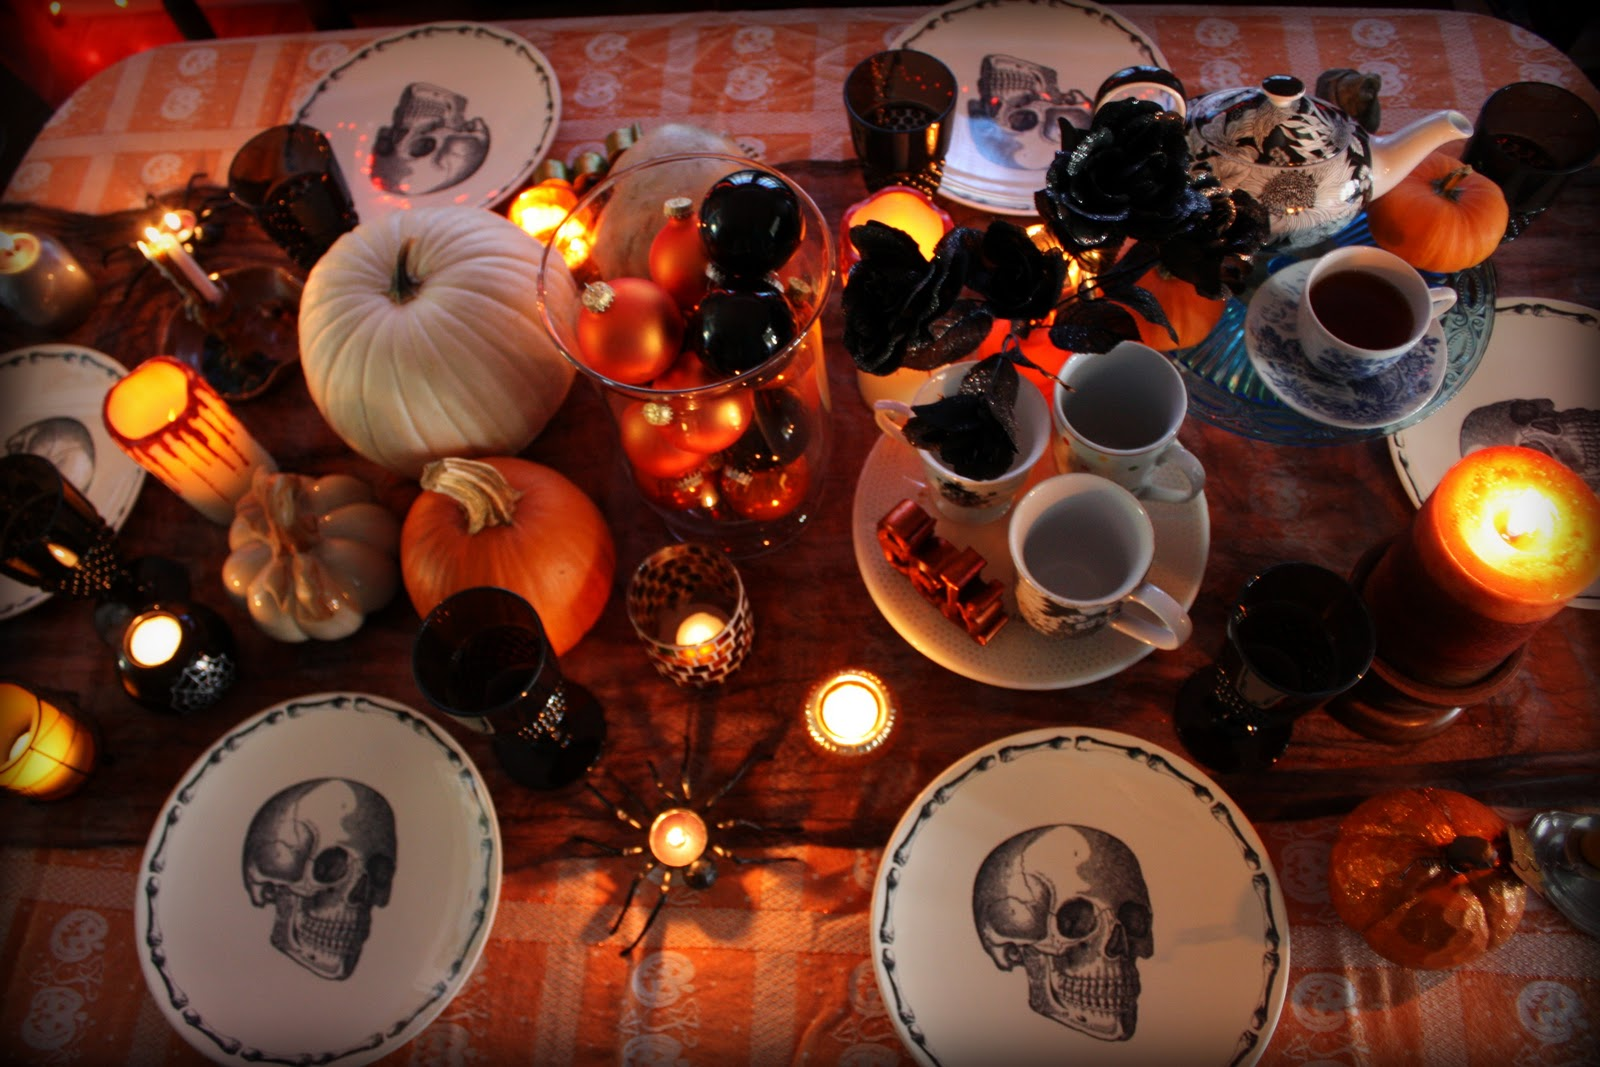 Sorry, Witches tea party sorry, can